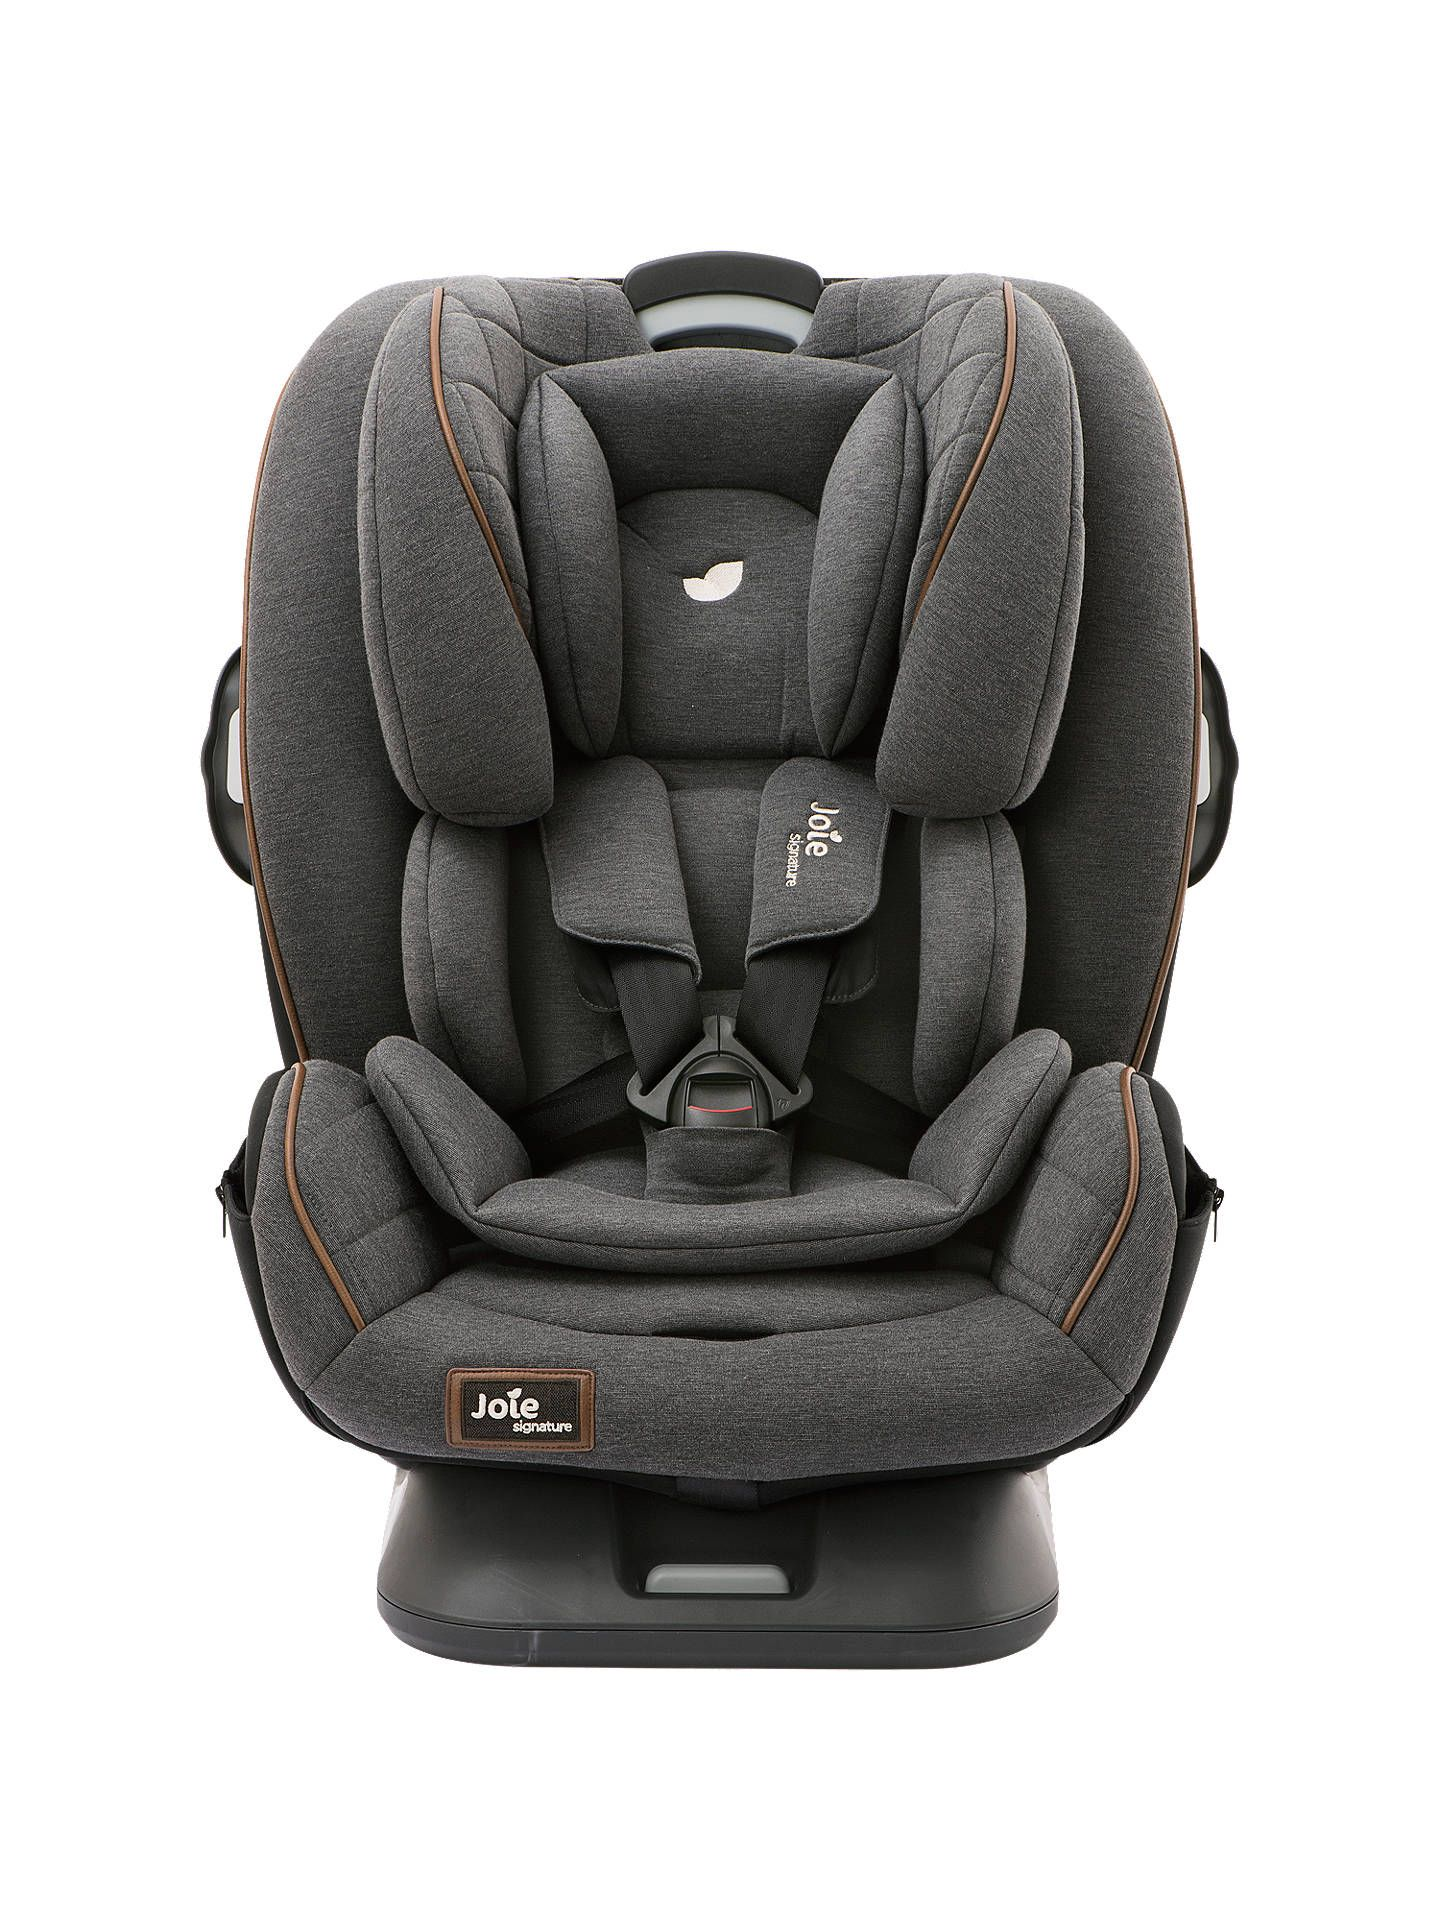 Joie Baby Every Stage FX Signature Group 0+/1/2/3 Car Seat